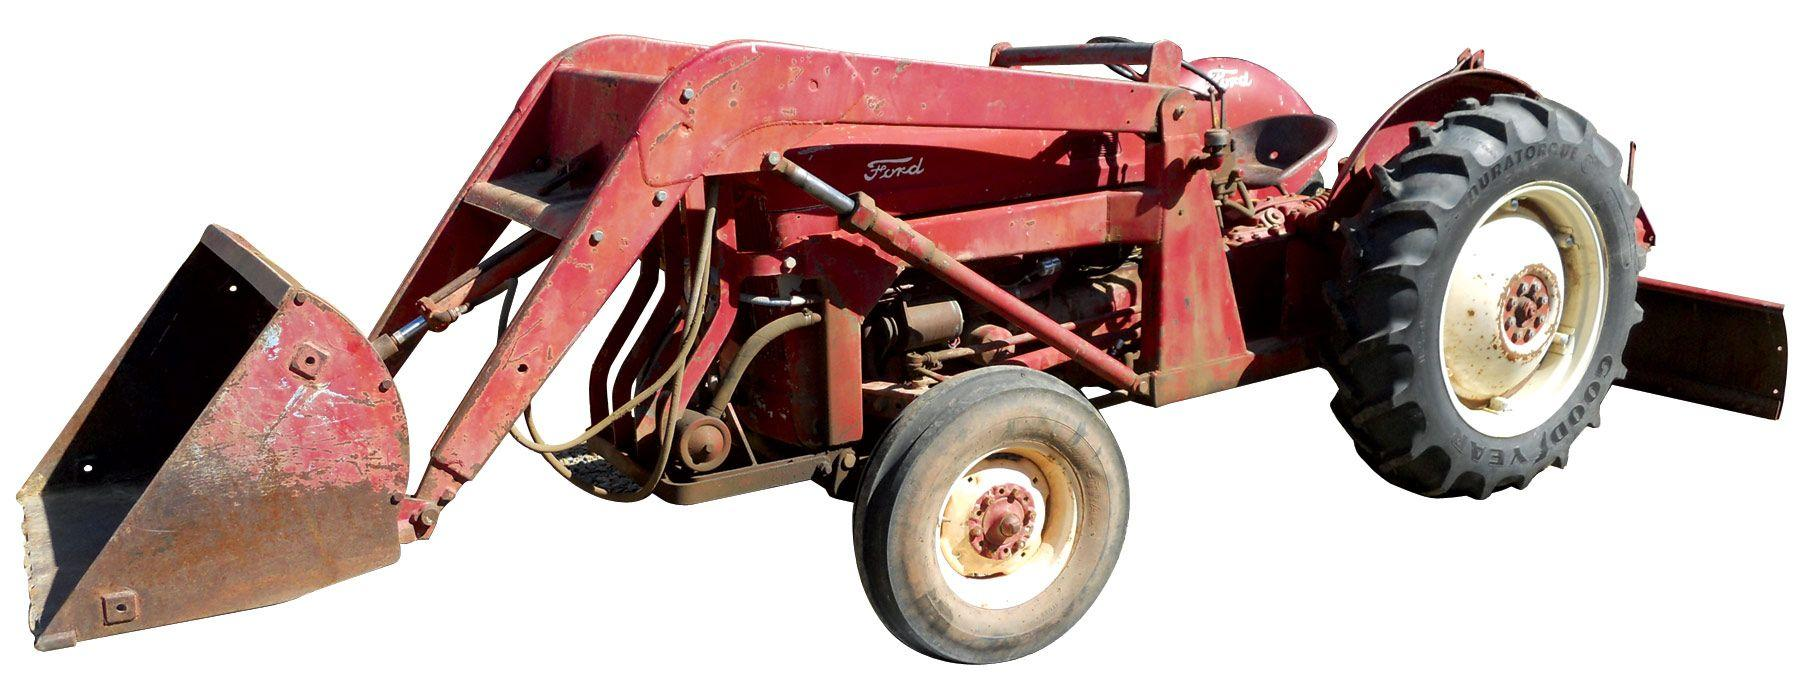 hight resolution of image 1 tractor ford jubilee w front end loader rear blade attachment